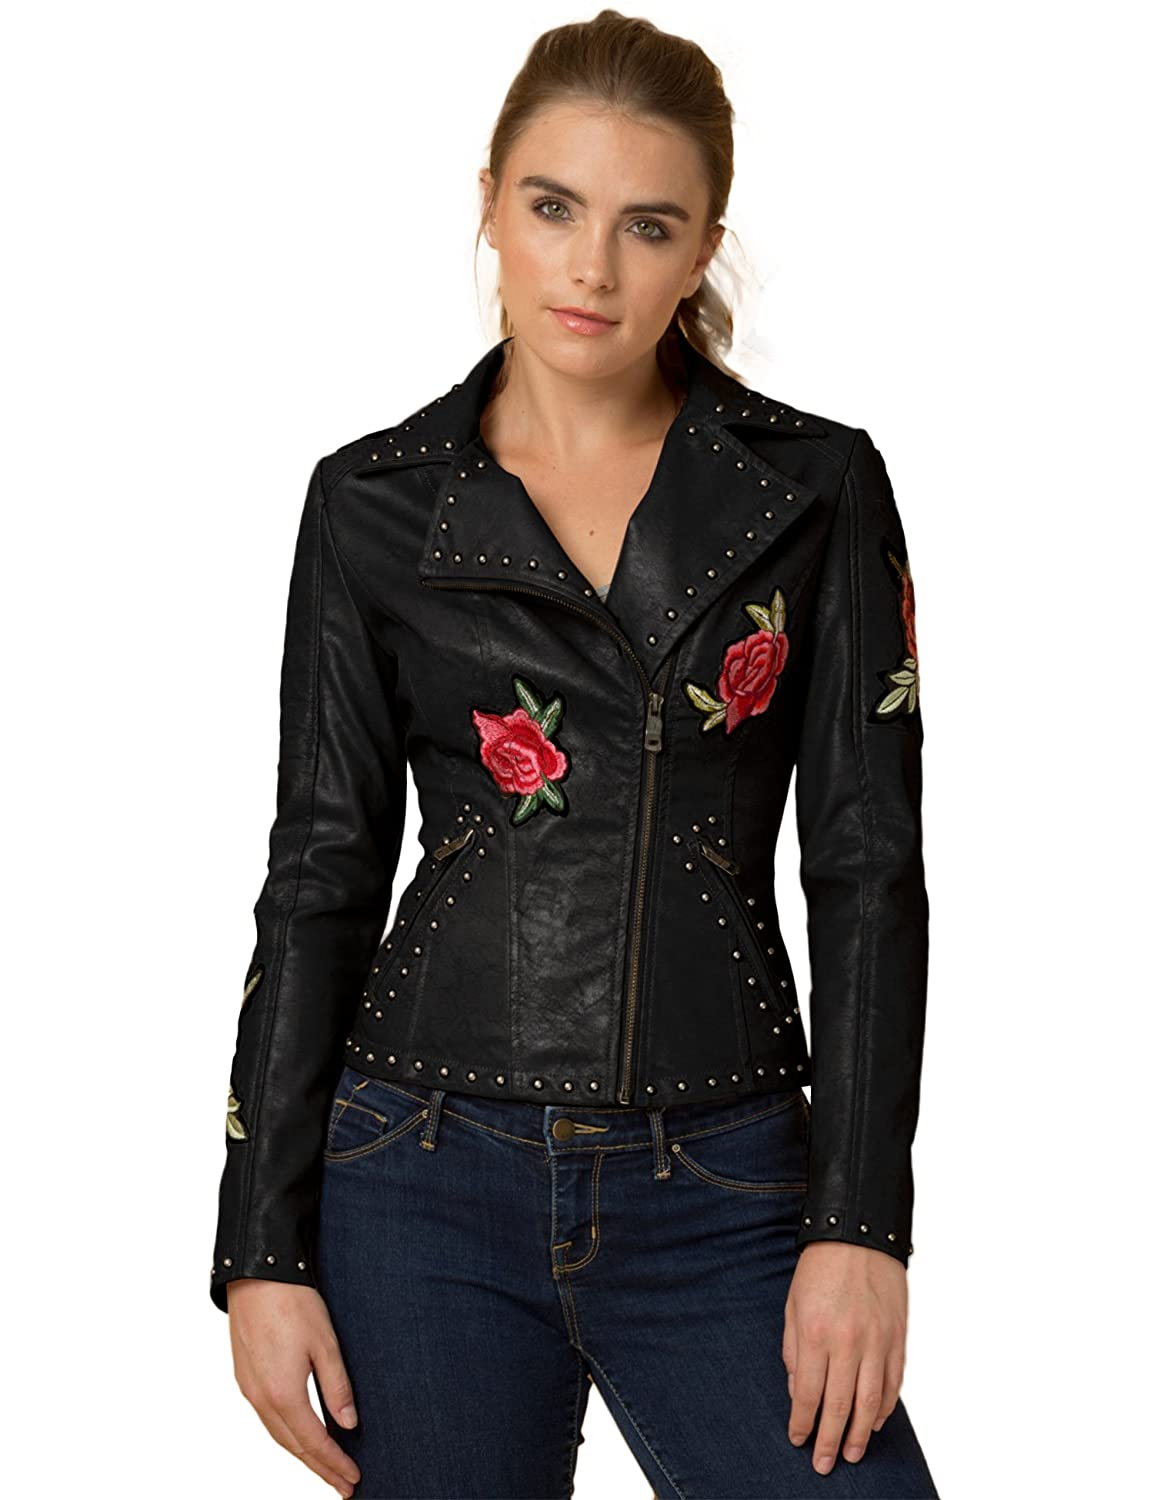 Come Together California WJC1497 Wmens Faux Leather Floral Embroidered Biker Jacket at Amazon Womens Coats Shop